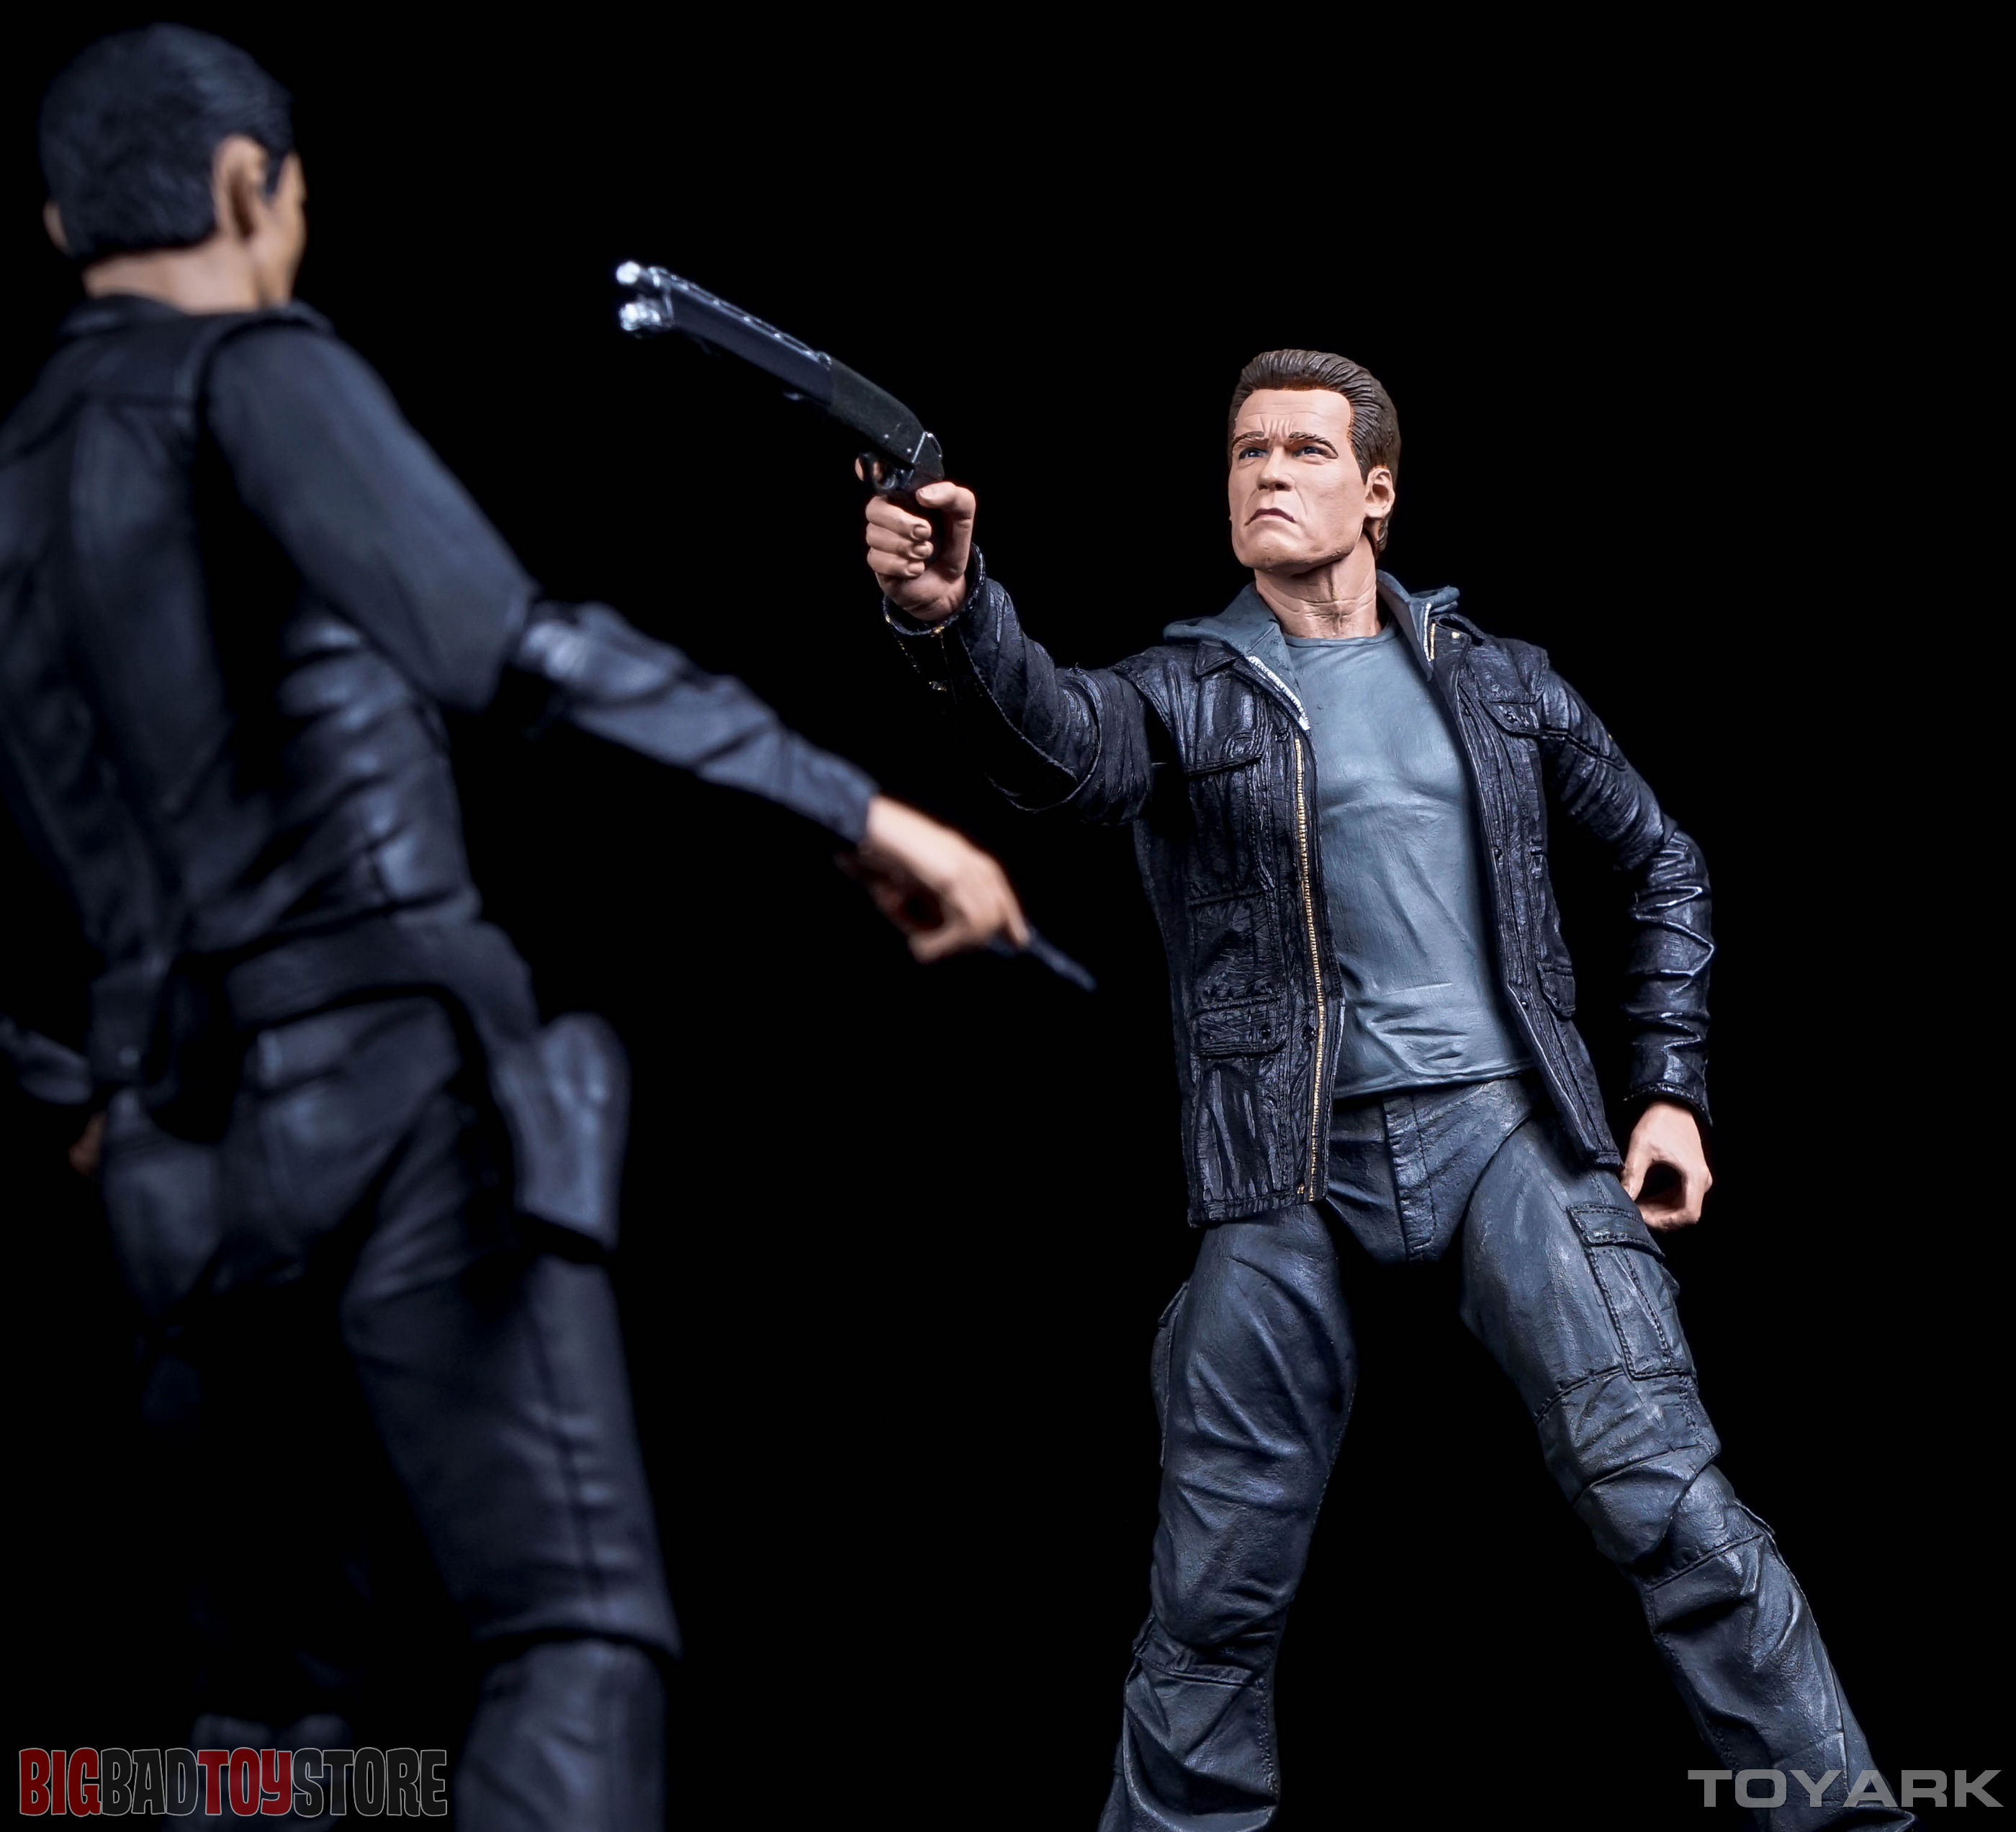 http://news.toyark.com/wp-content/uploads/sites/4/2015/10/NECA-Guardian-T800-Terminator-Genisys-039.jpg